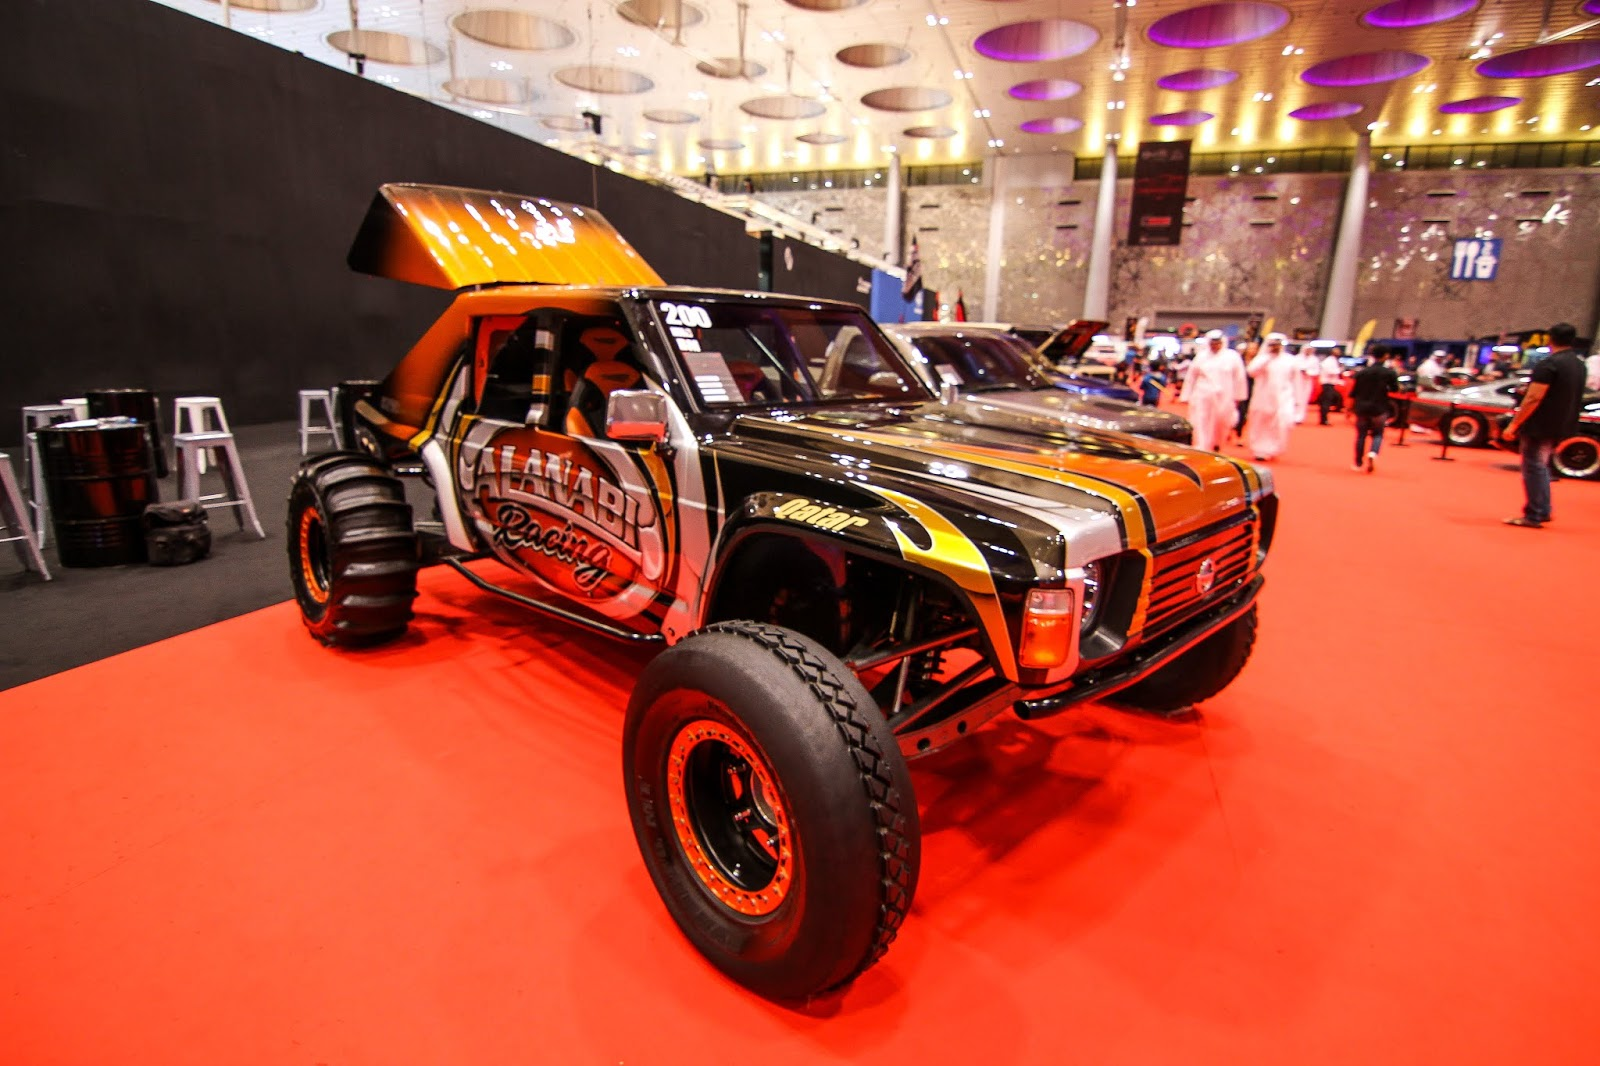 medium resolution of baja nissan patrol by joe fab at qatar motor show